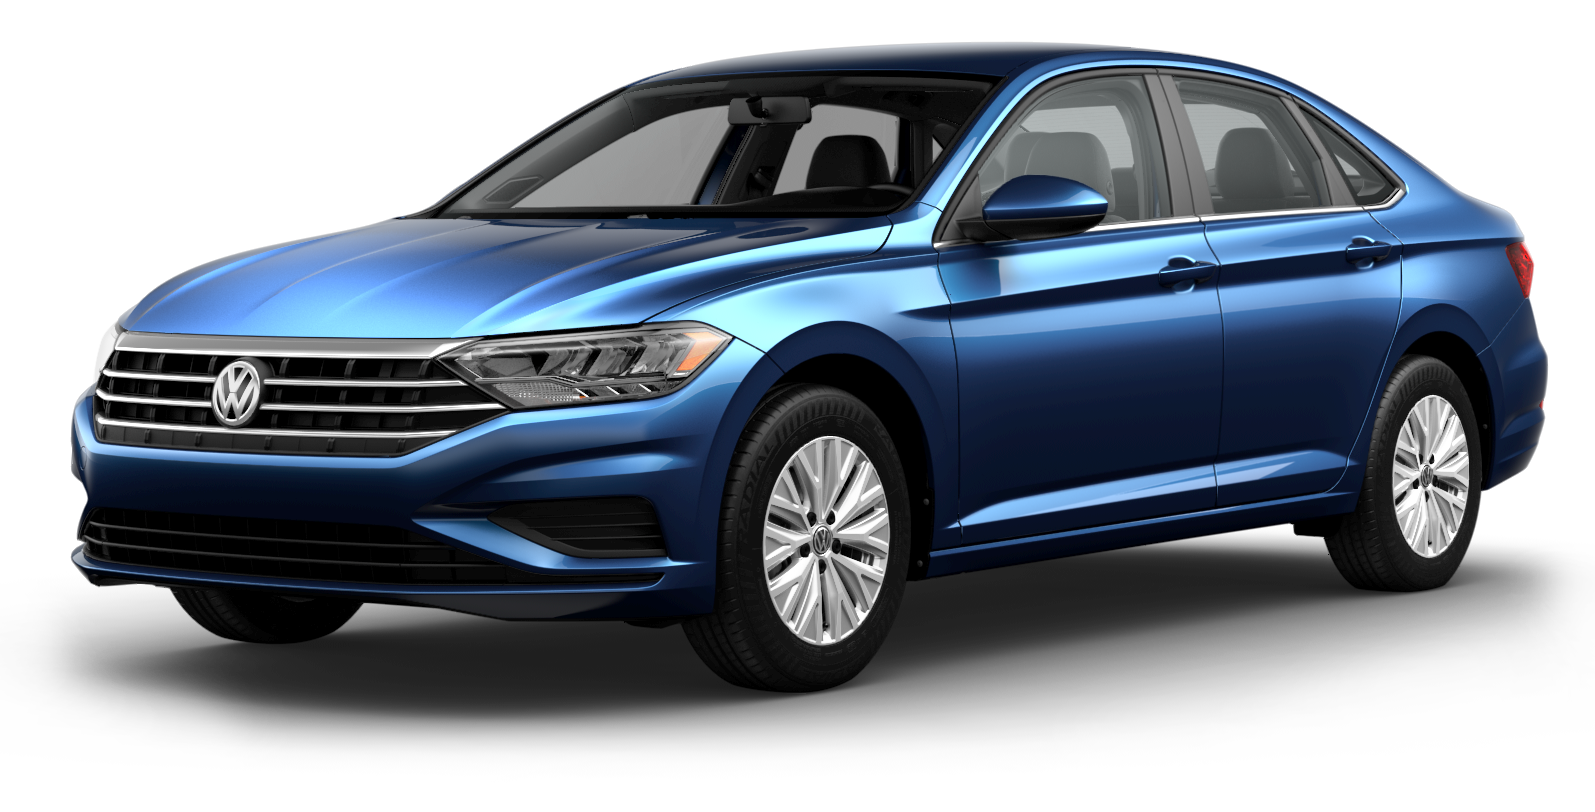 Review & Compare Volkswagen Jetta at Larry H. Miller Volkswagen Lakewood